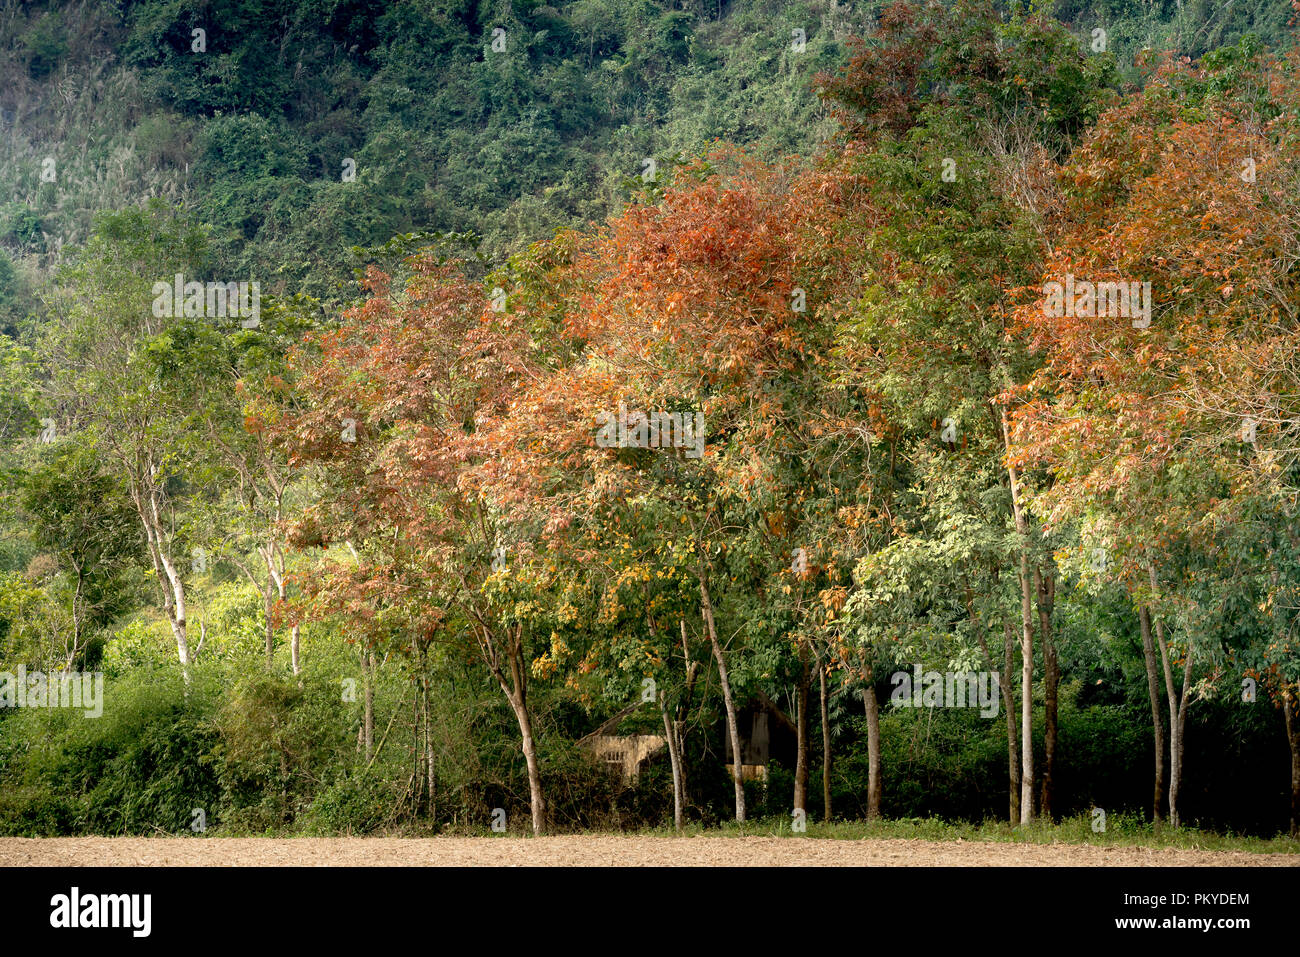 Rubber tree autumn colors in Vietnam - Stock Image